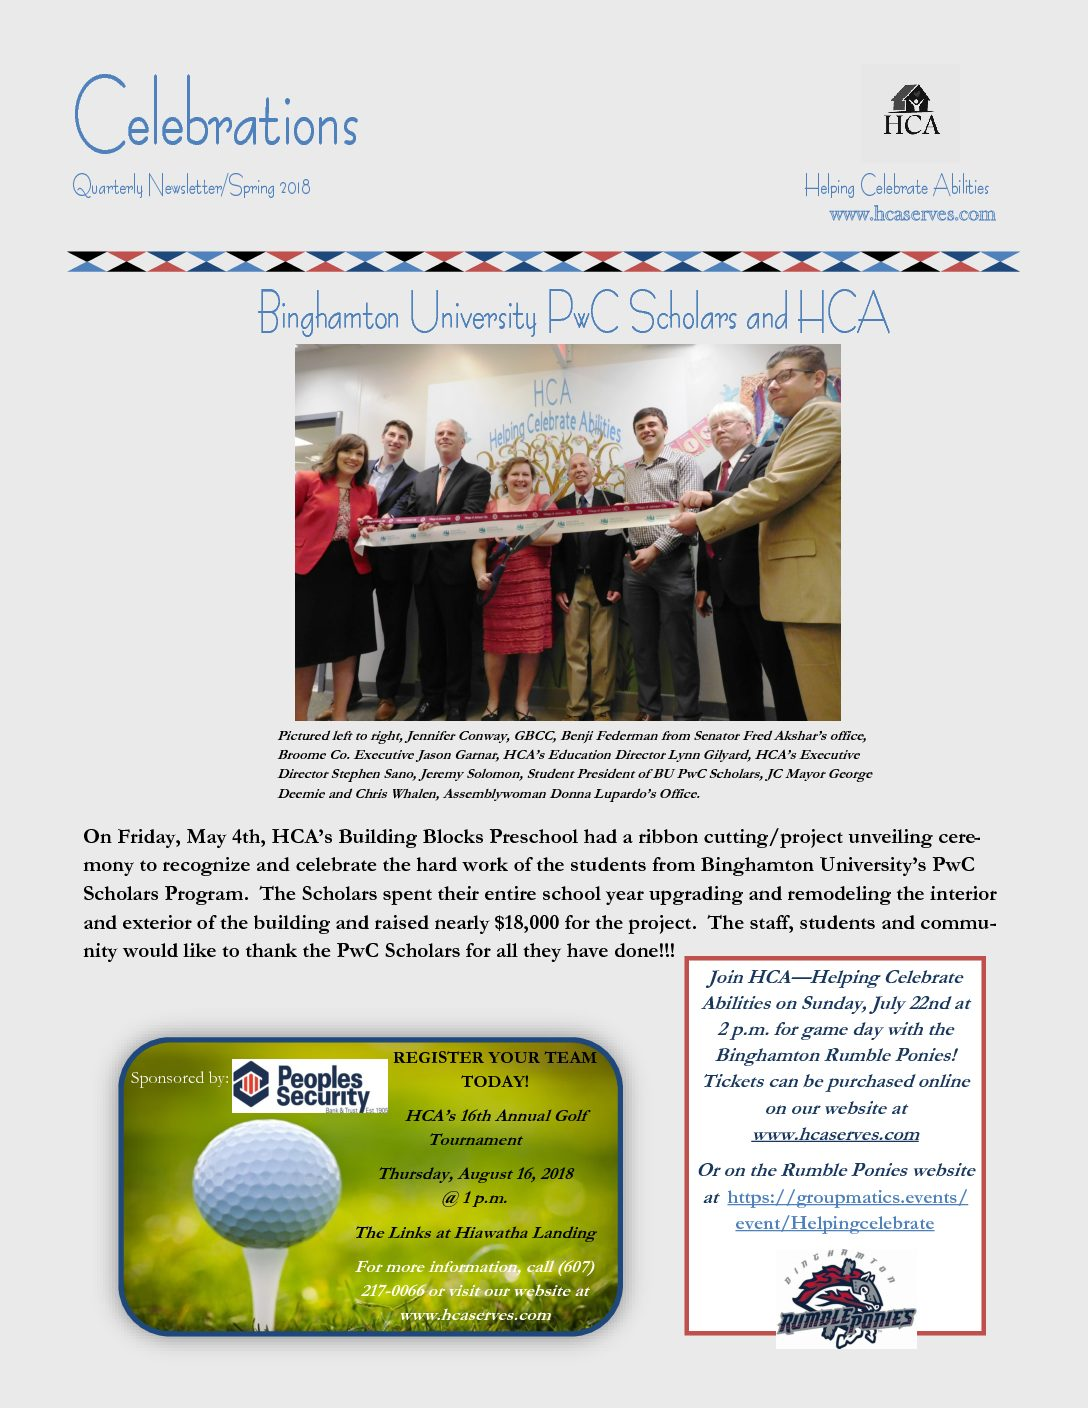 Spring/Quarterly Newsletter